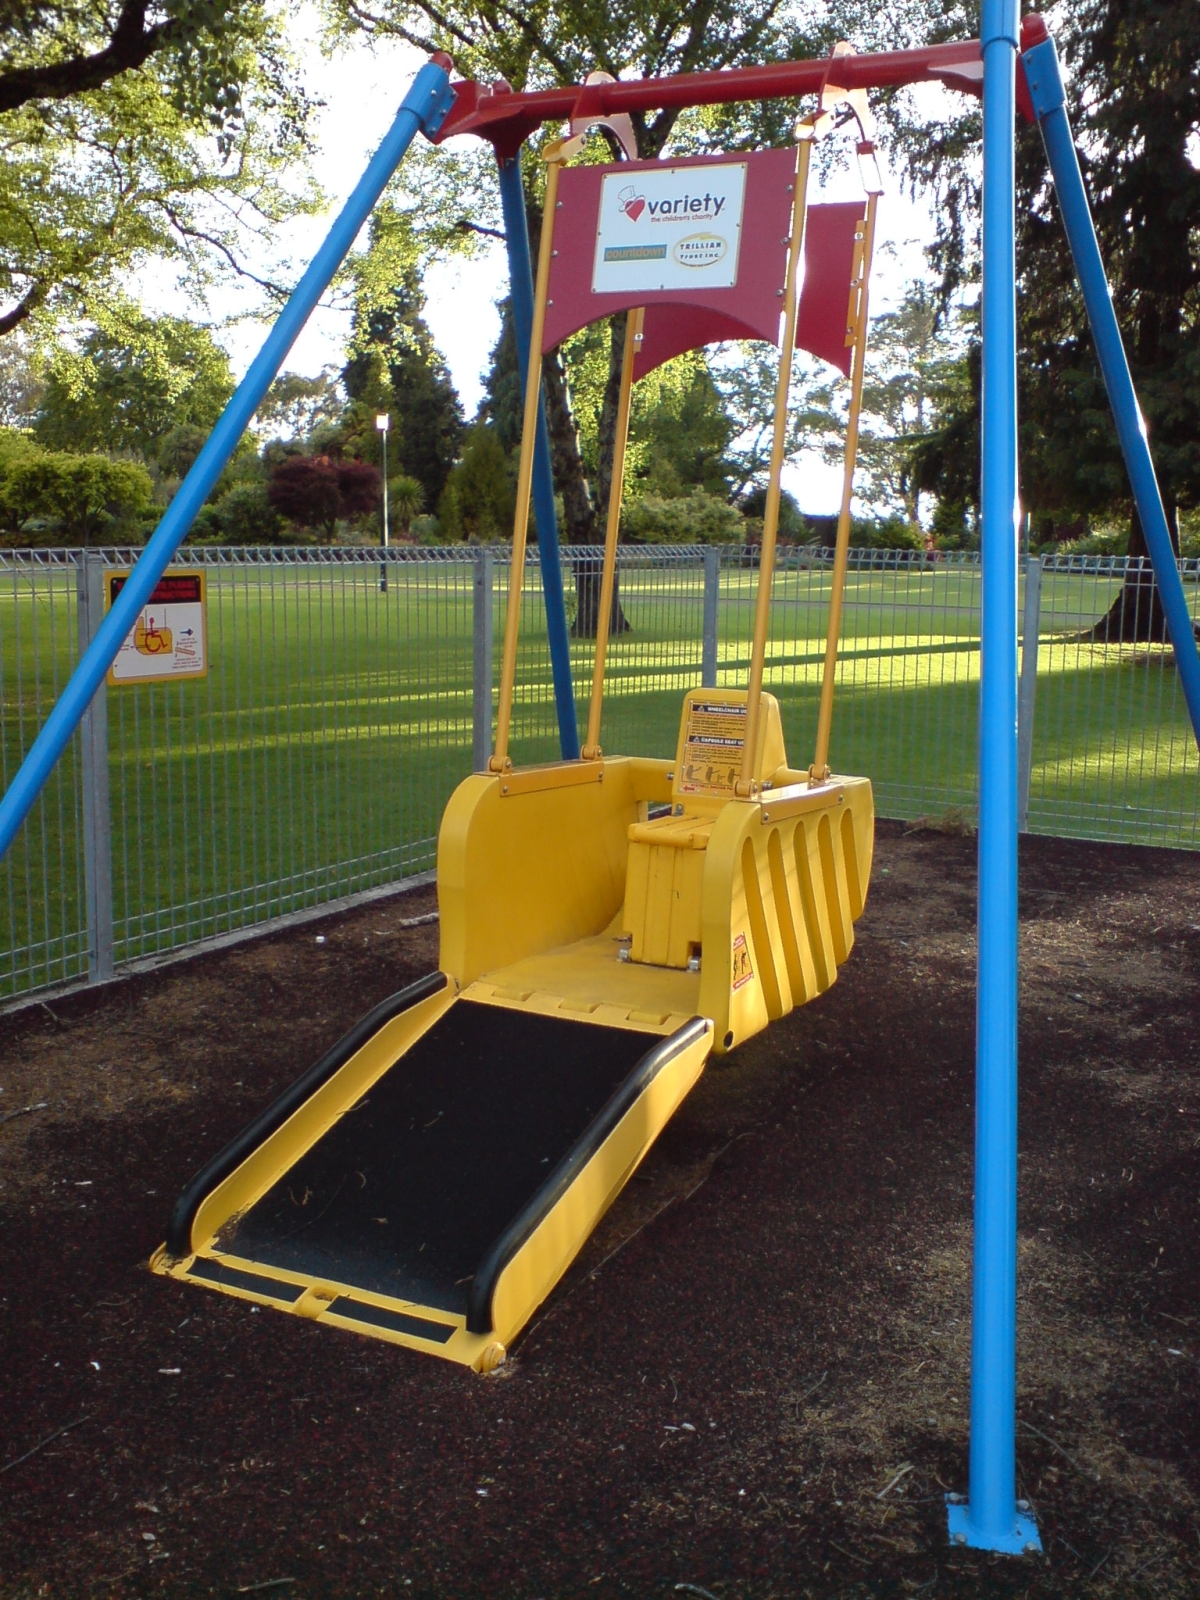 A swing for kids in wheelchairs